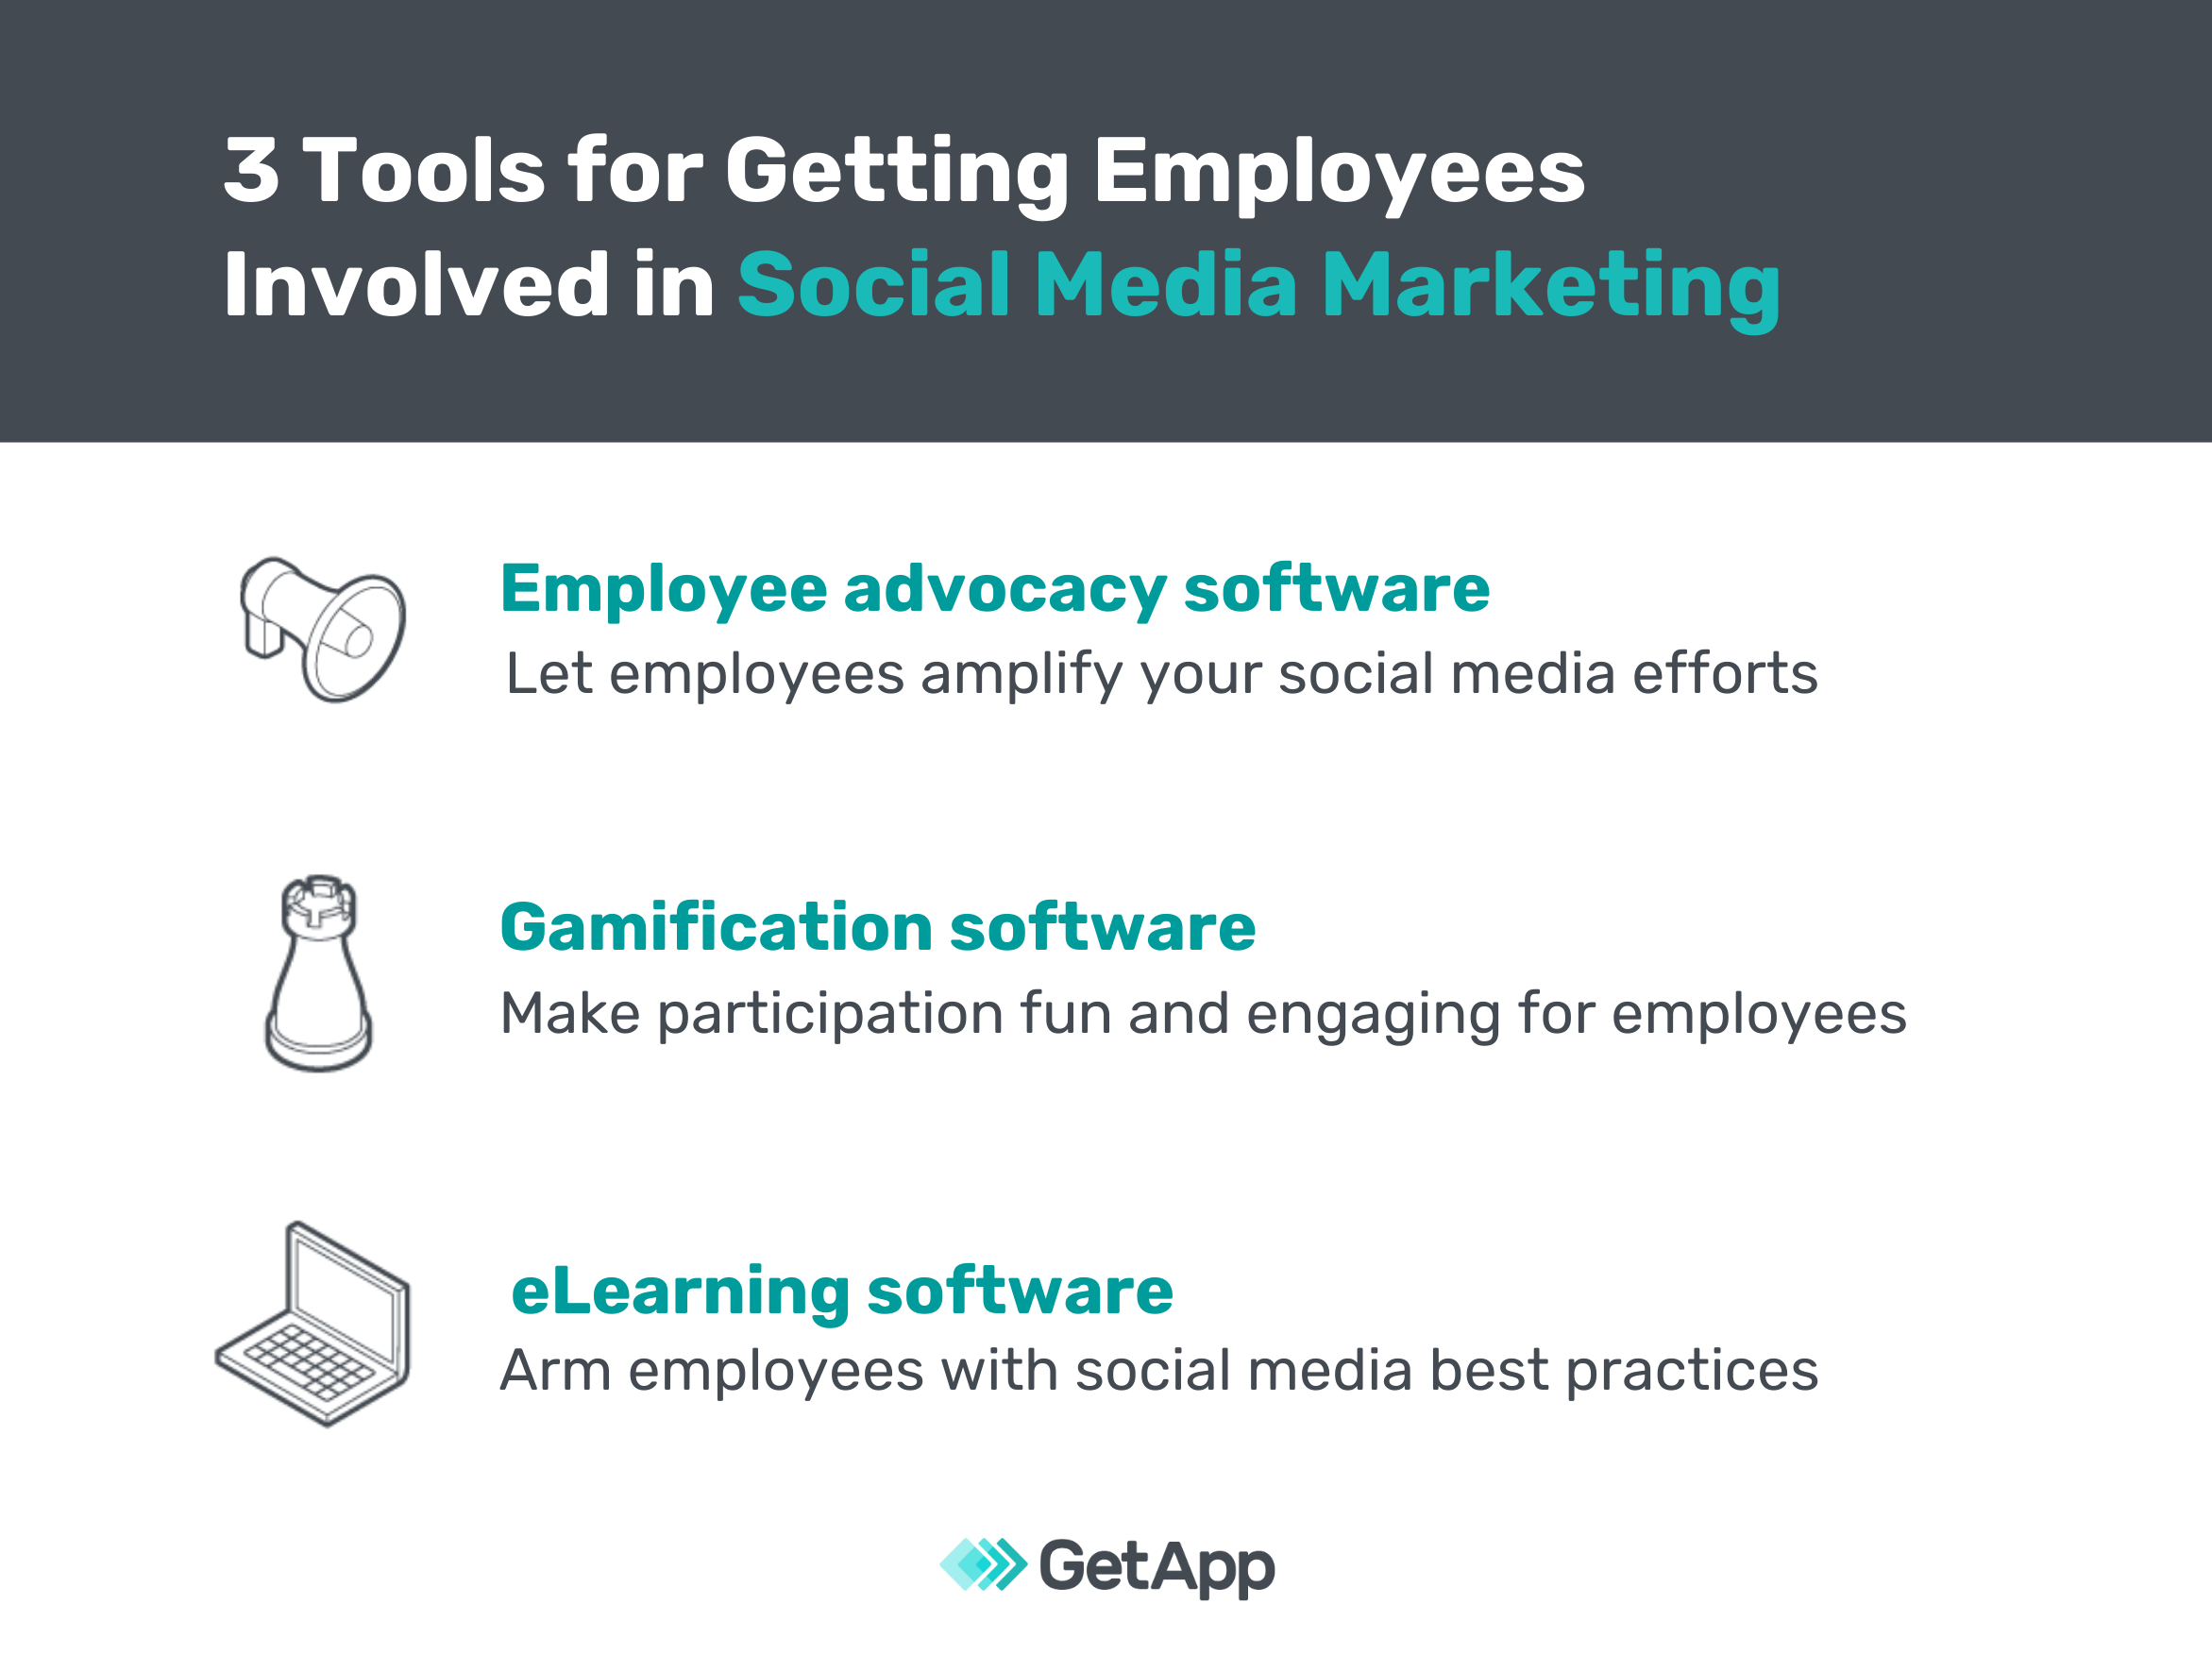 3 tools for getting employees involved in social media marketing.